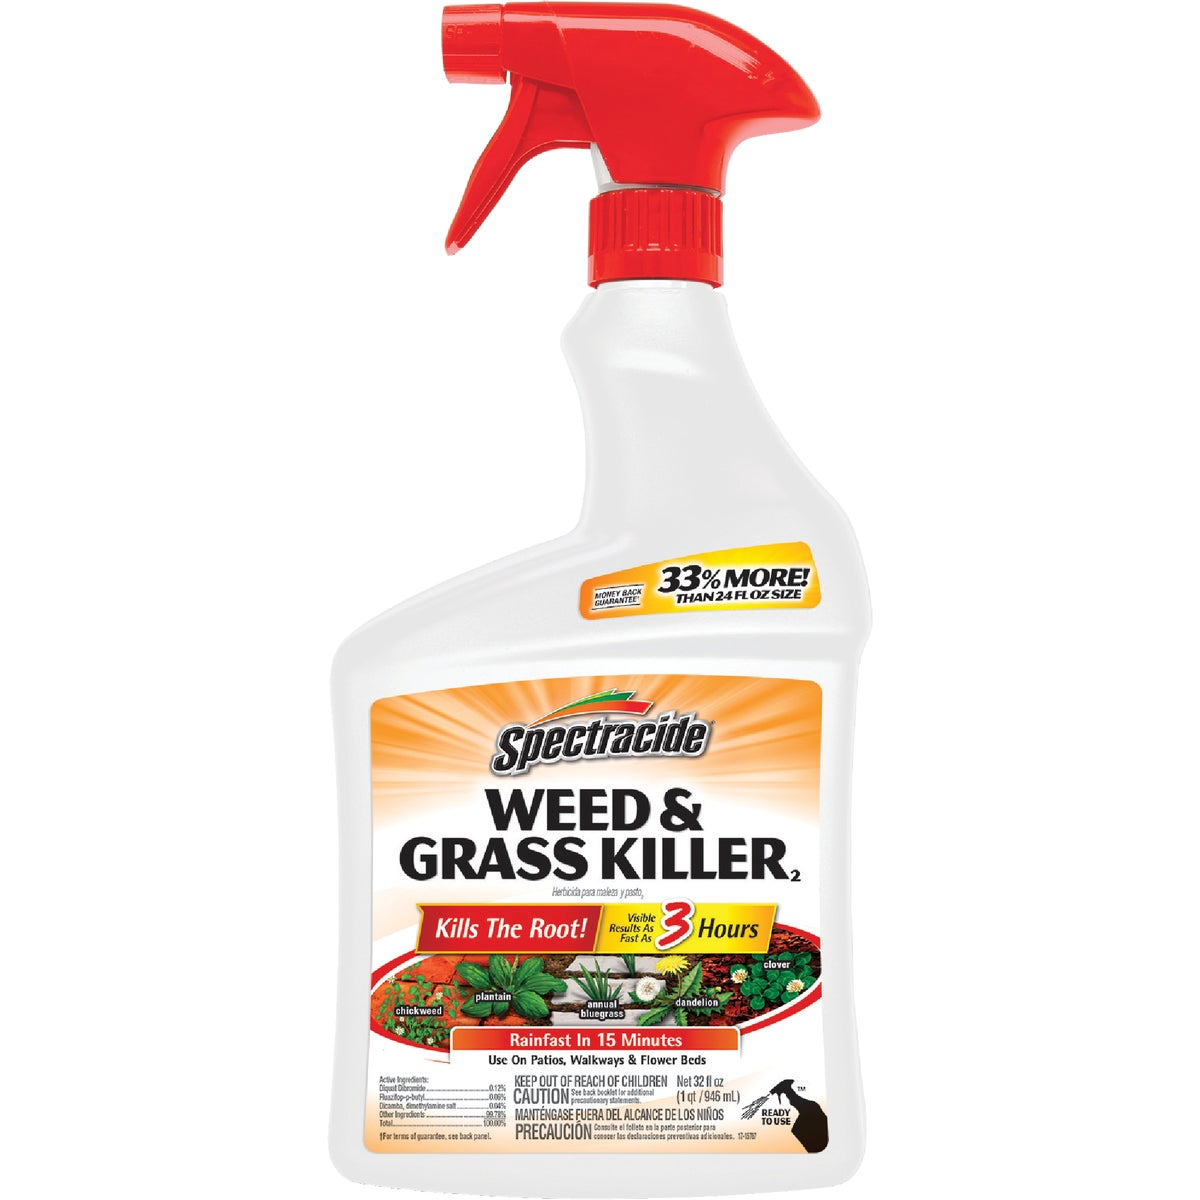 26OZ RTU WEED&GRASS KILR - HG86019 by United Industries Co